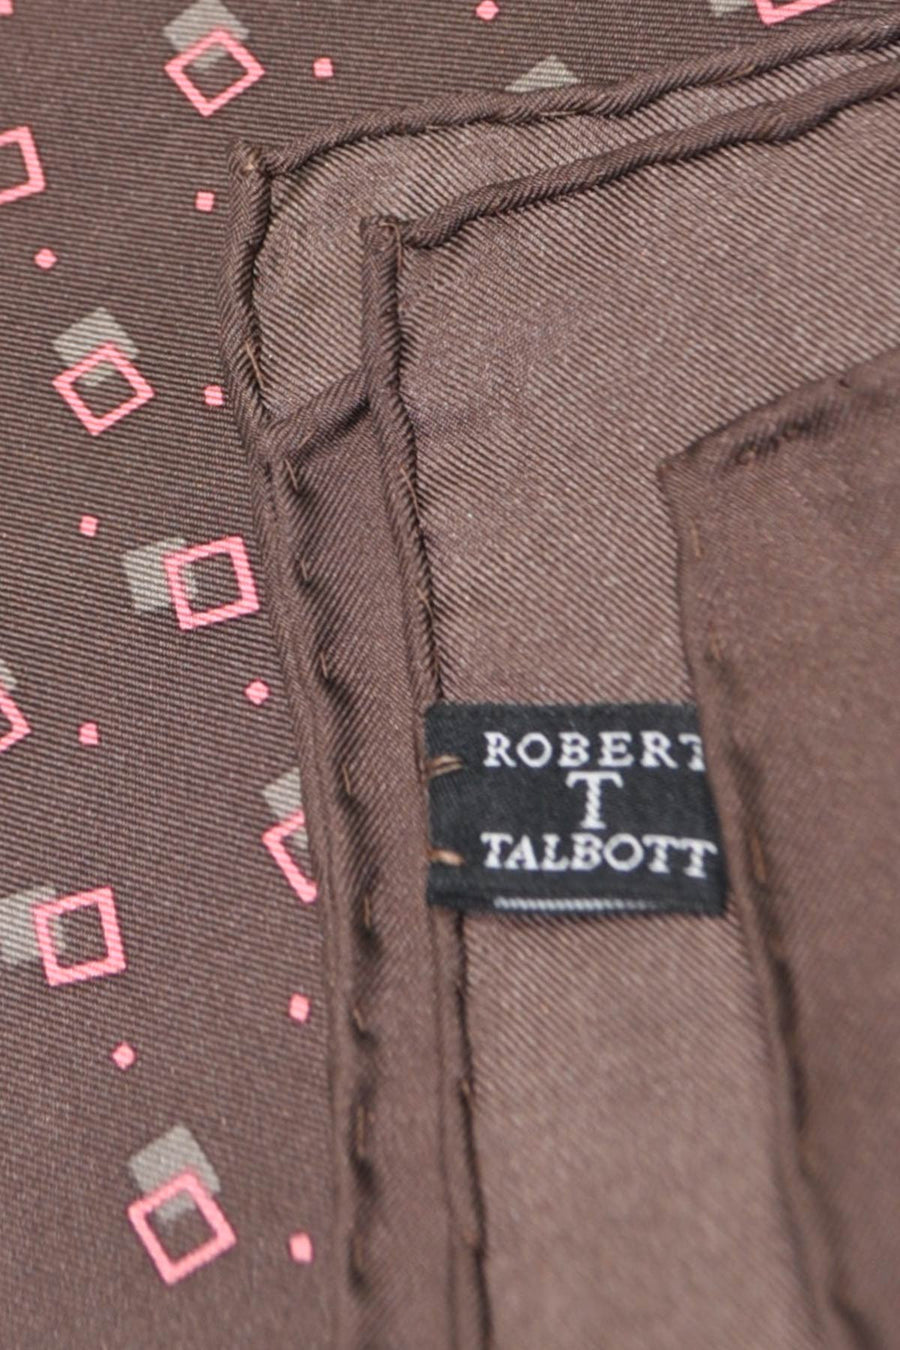 Robert Talbott Silk Pocket Square Brown Pink Squares FINAL SALE